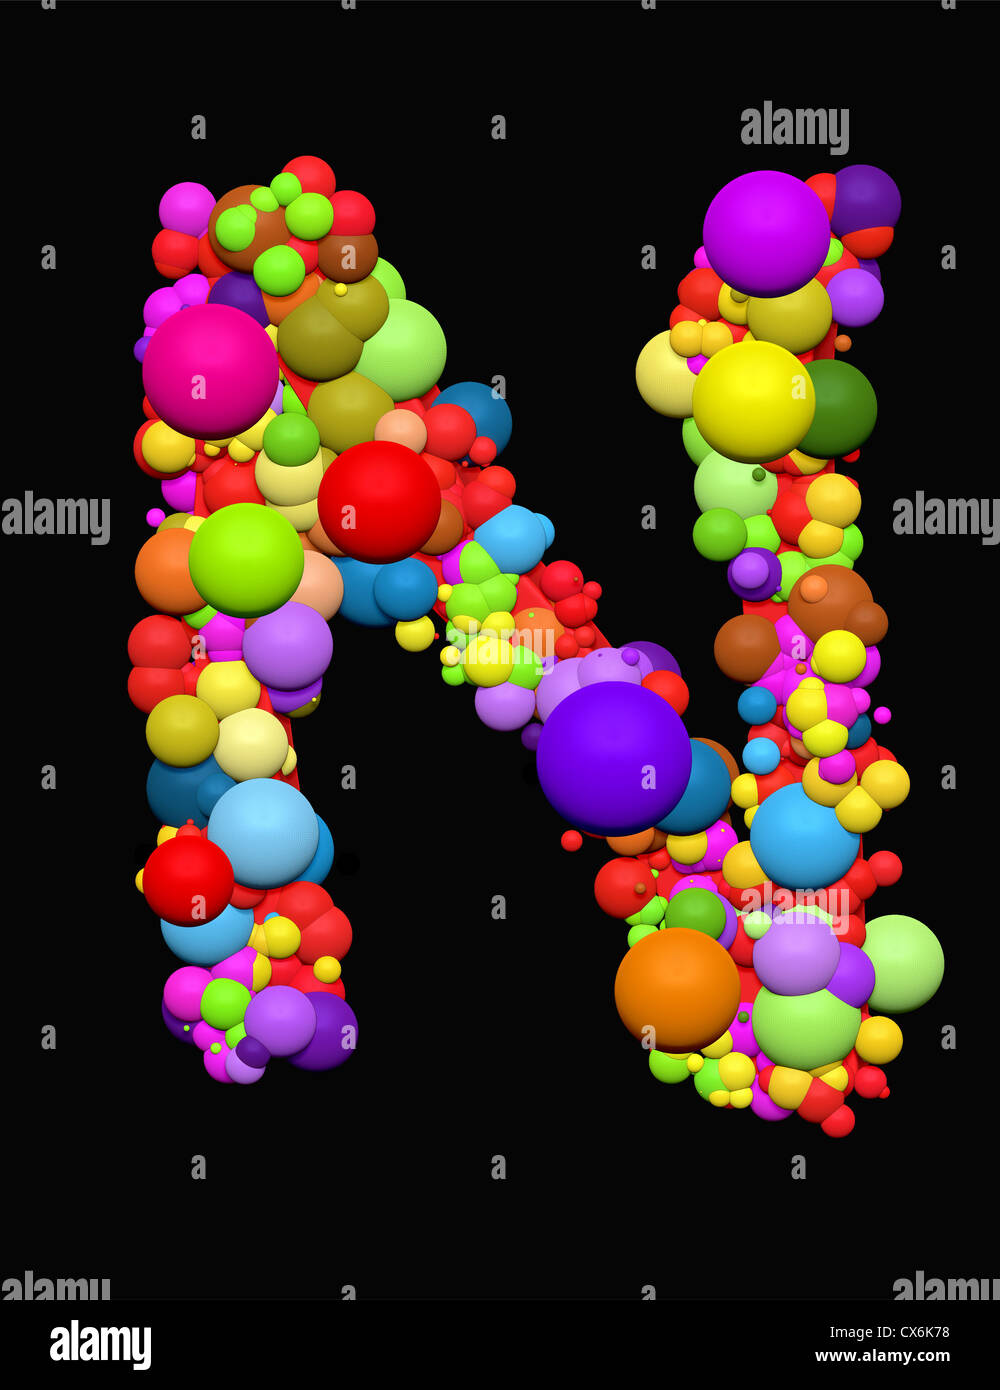 alphabet letter sign abc symbol 3d3d graphics illustration n sign n balls bubbles letter n